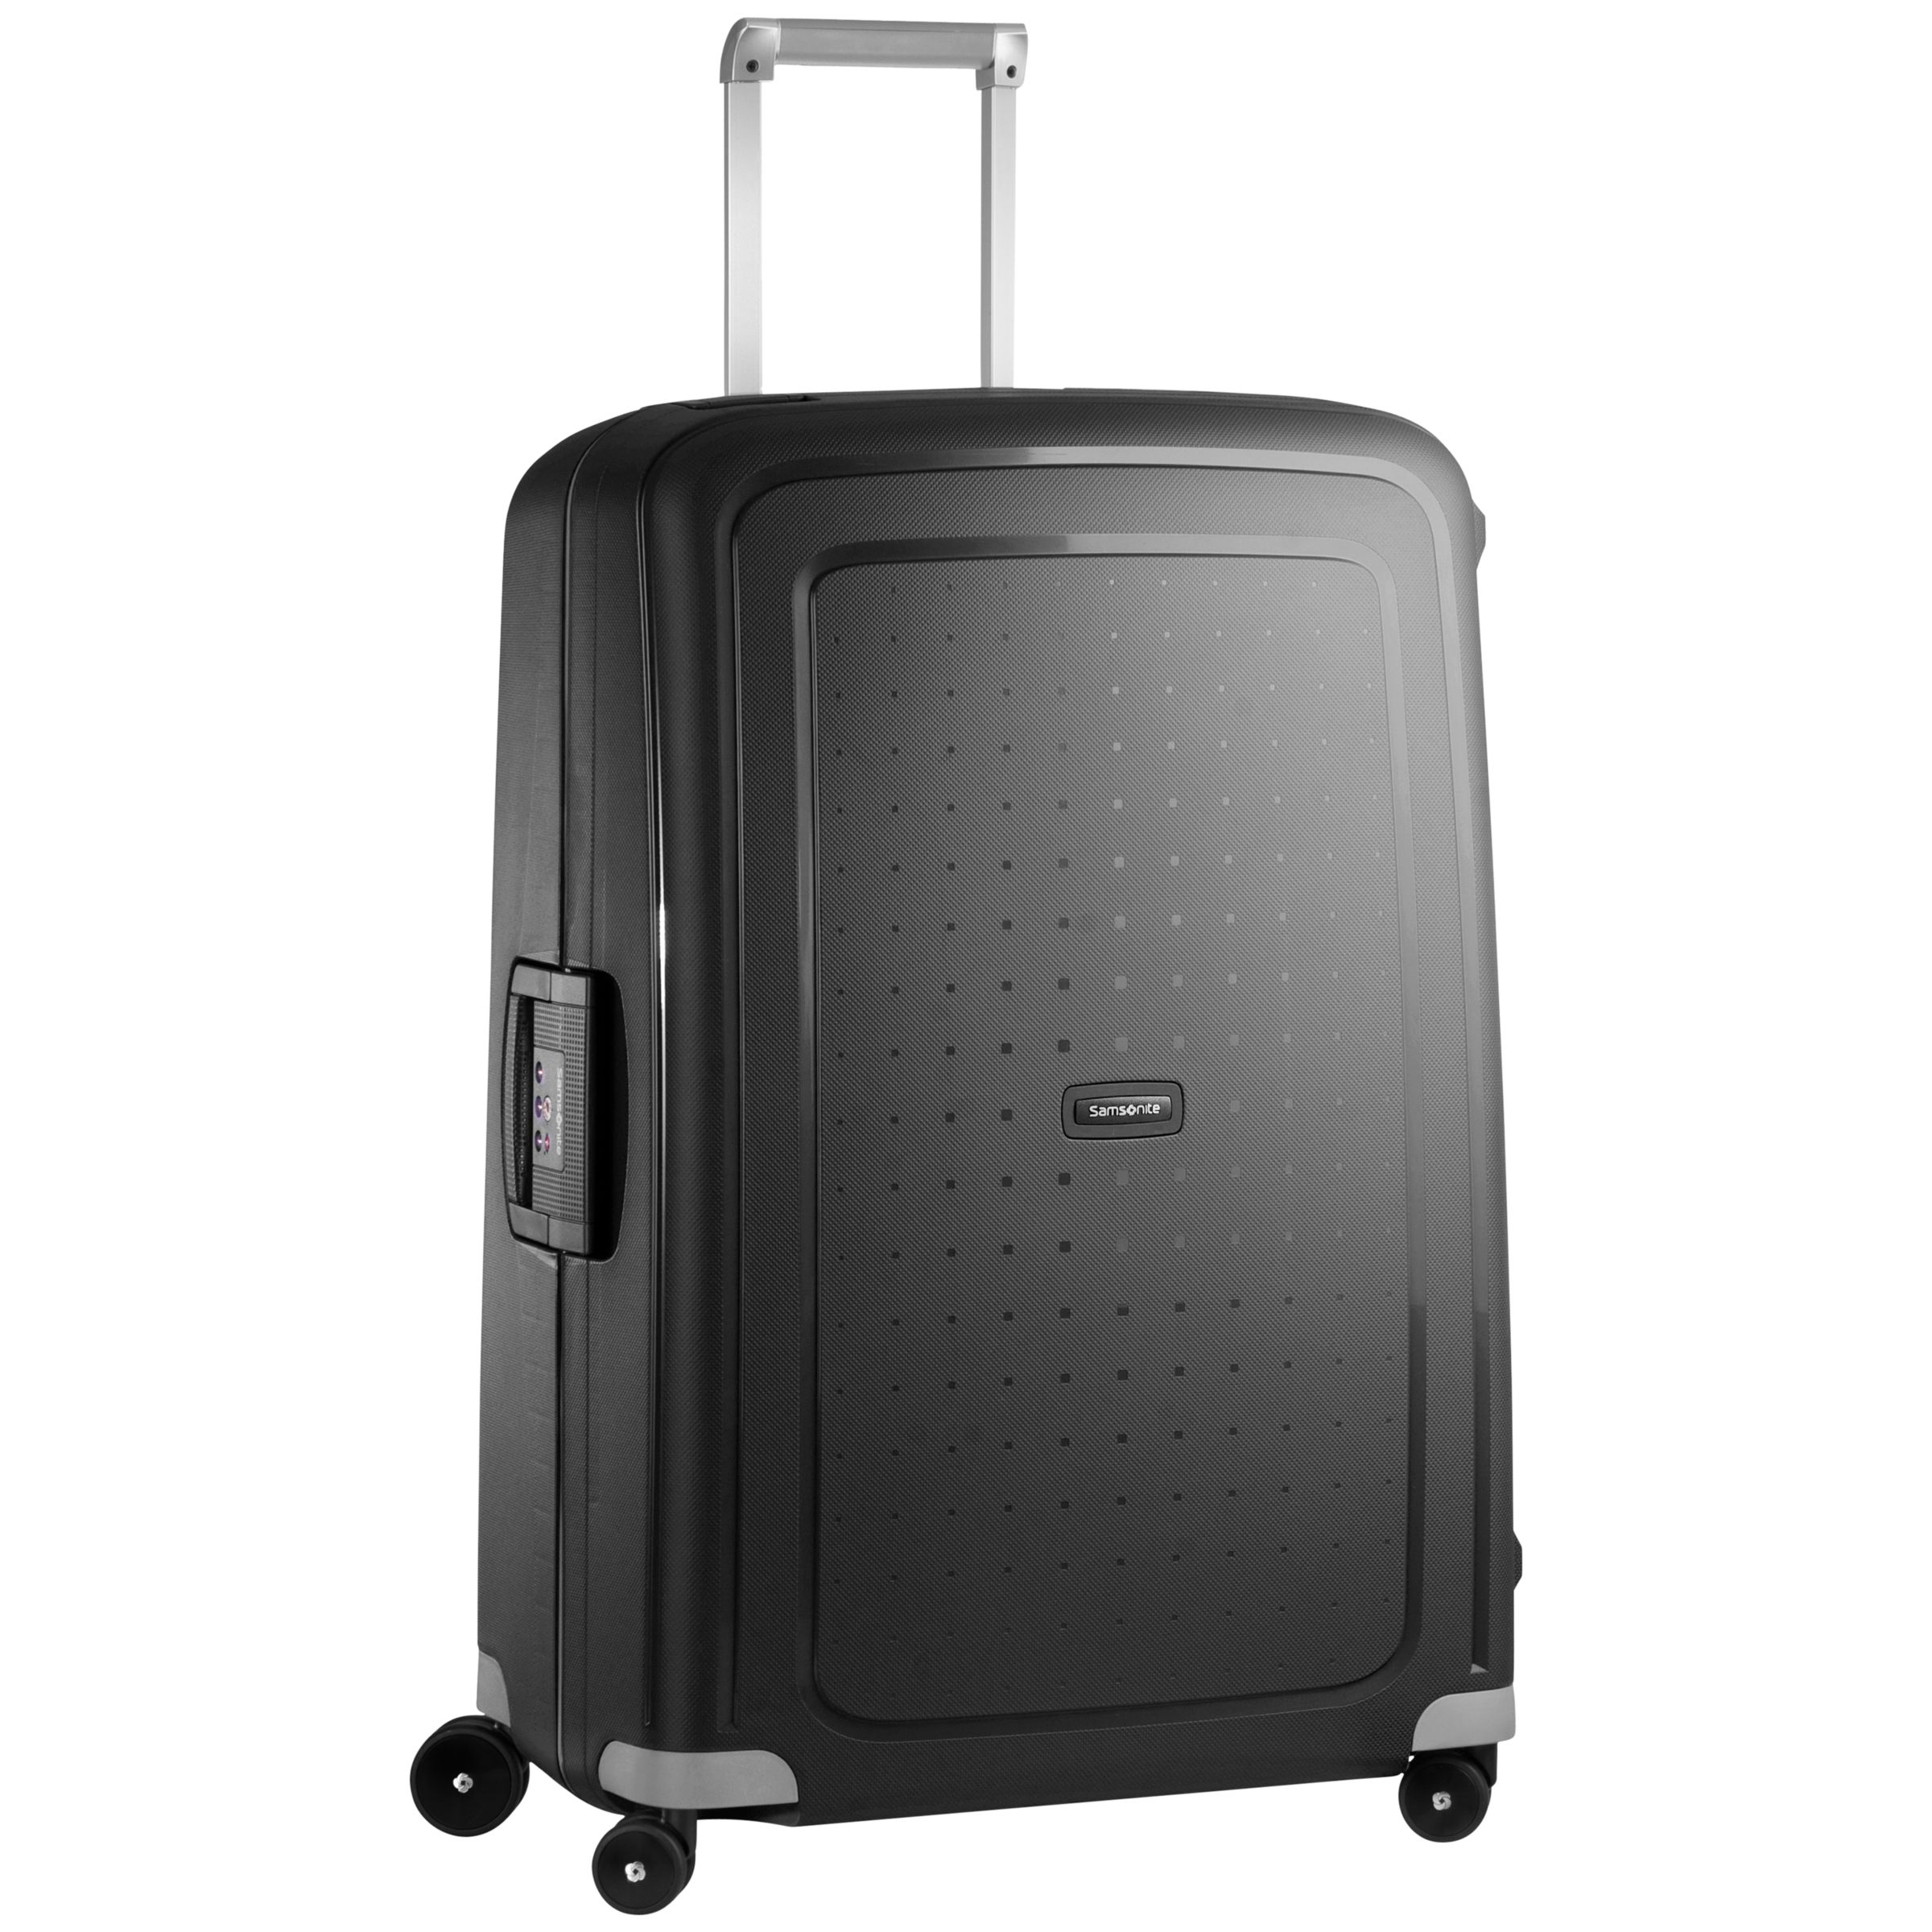 Samsonite Samsonite S'Cure 4-Wheel 81cm Extra Large Suitcase